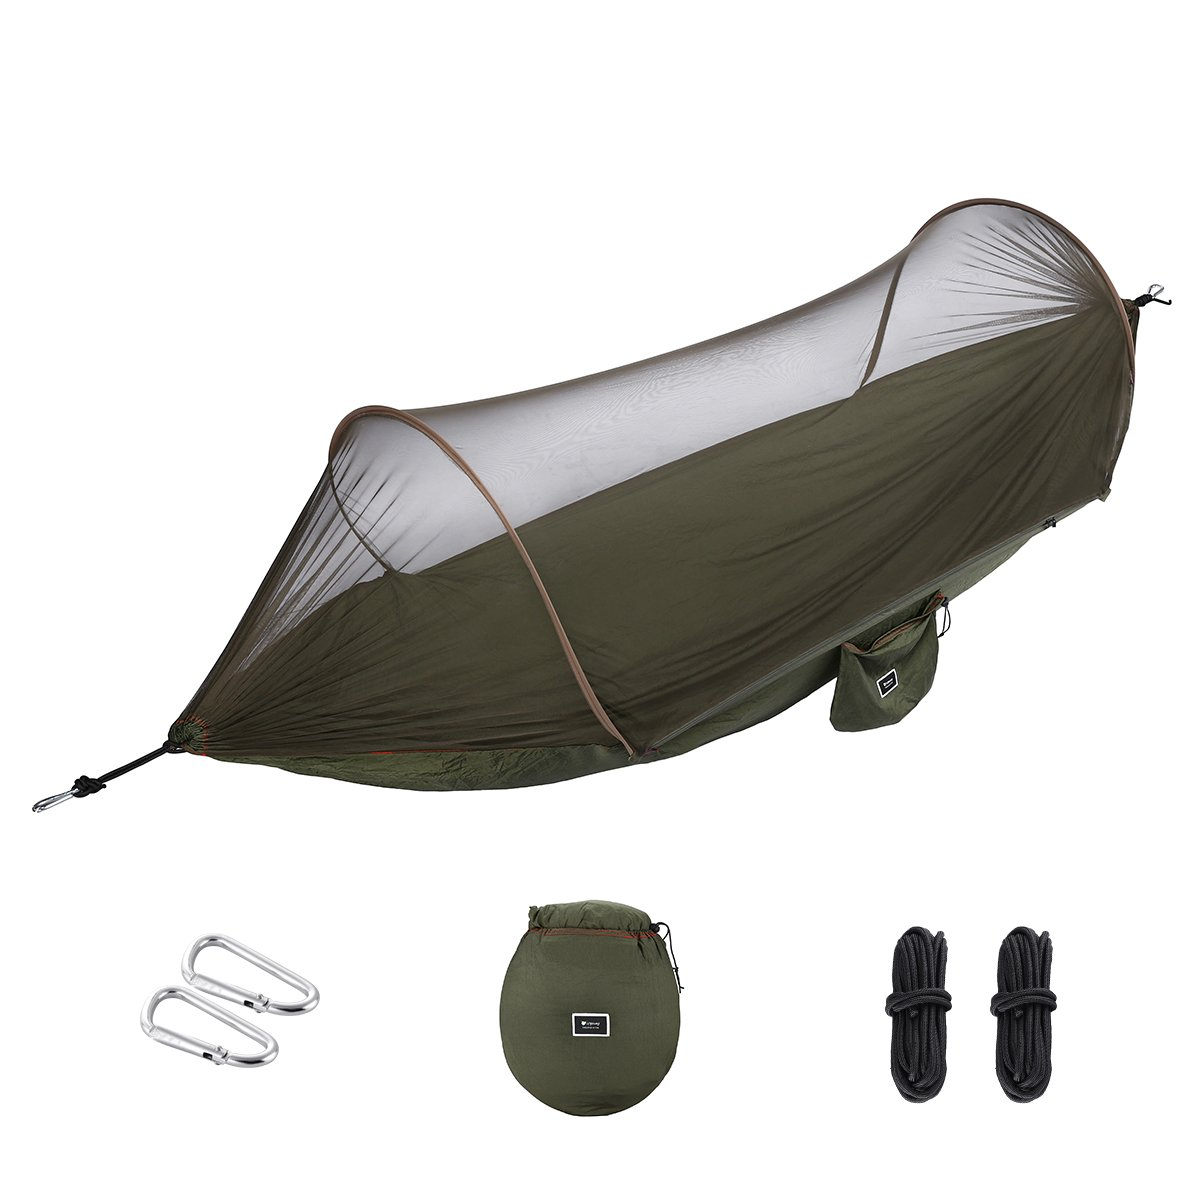 isYoung Mosquito Parachute Portable Outdoors Image 1